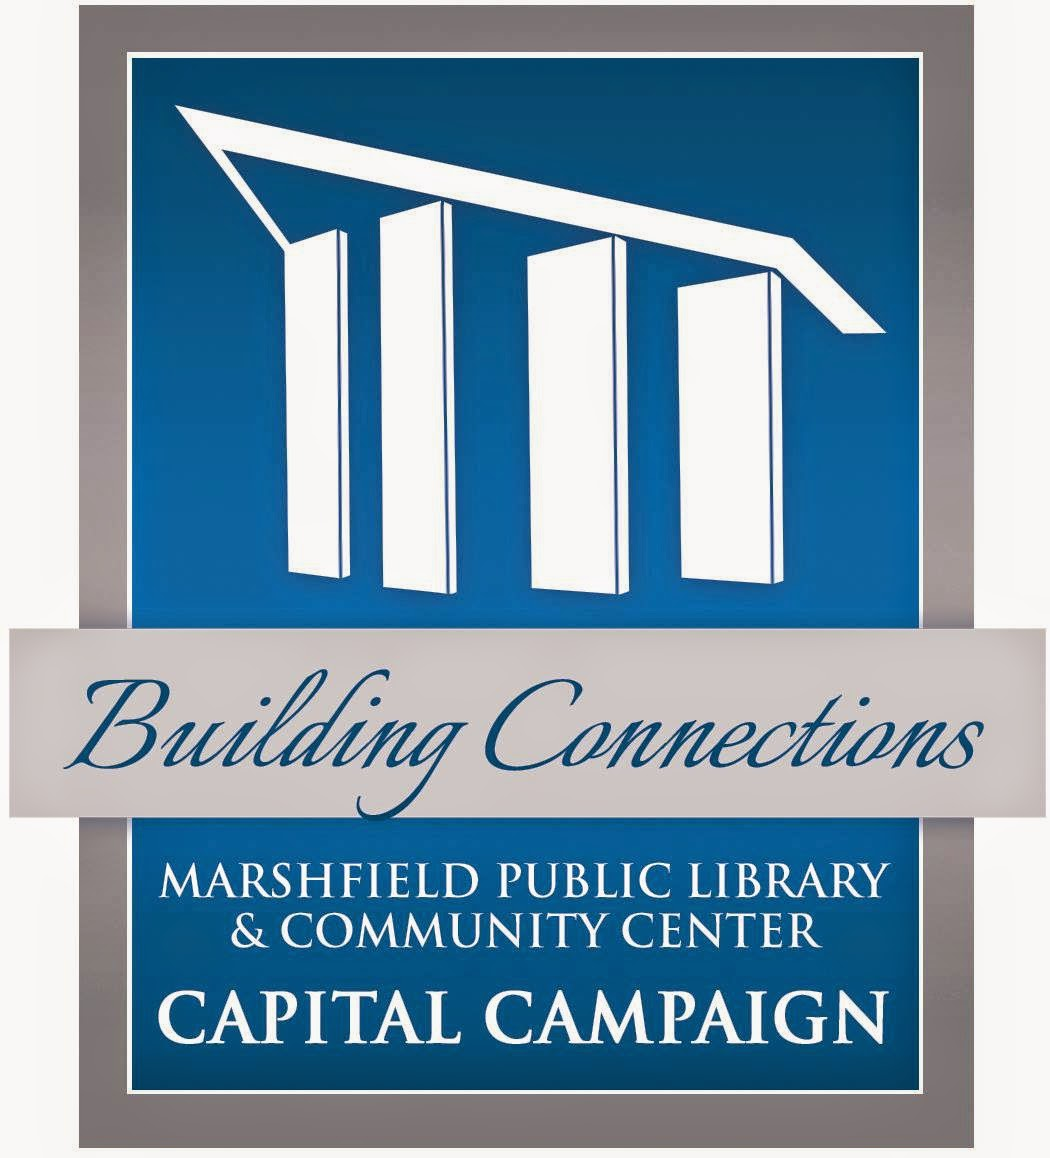 Marshfield Public Library & Community Center